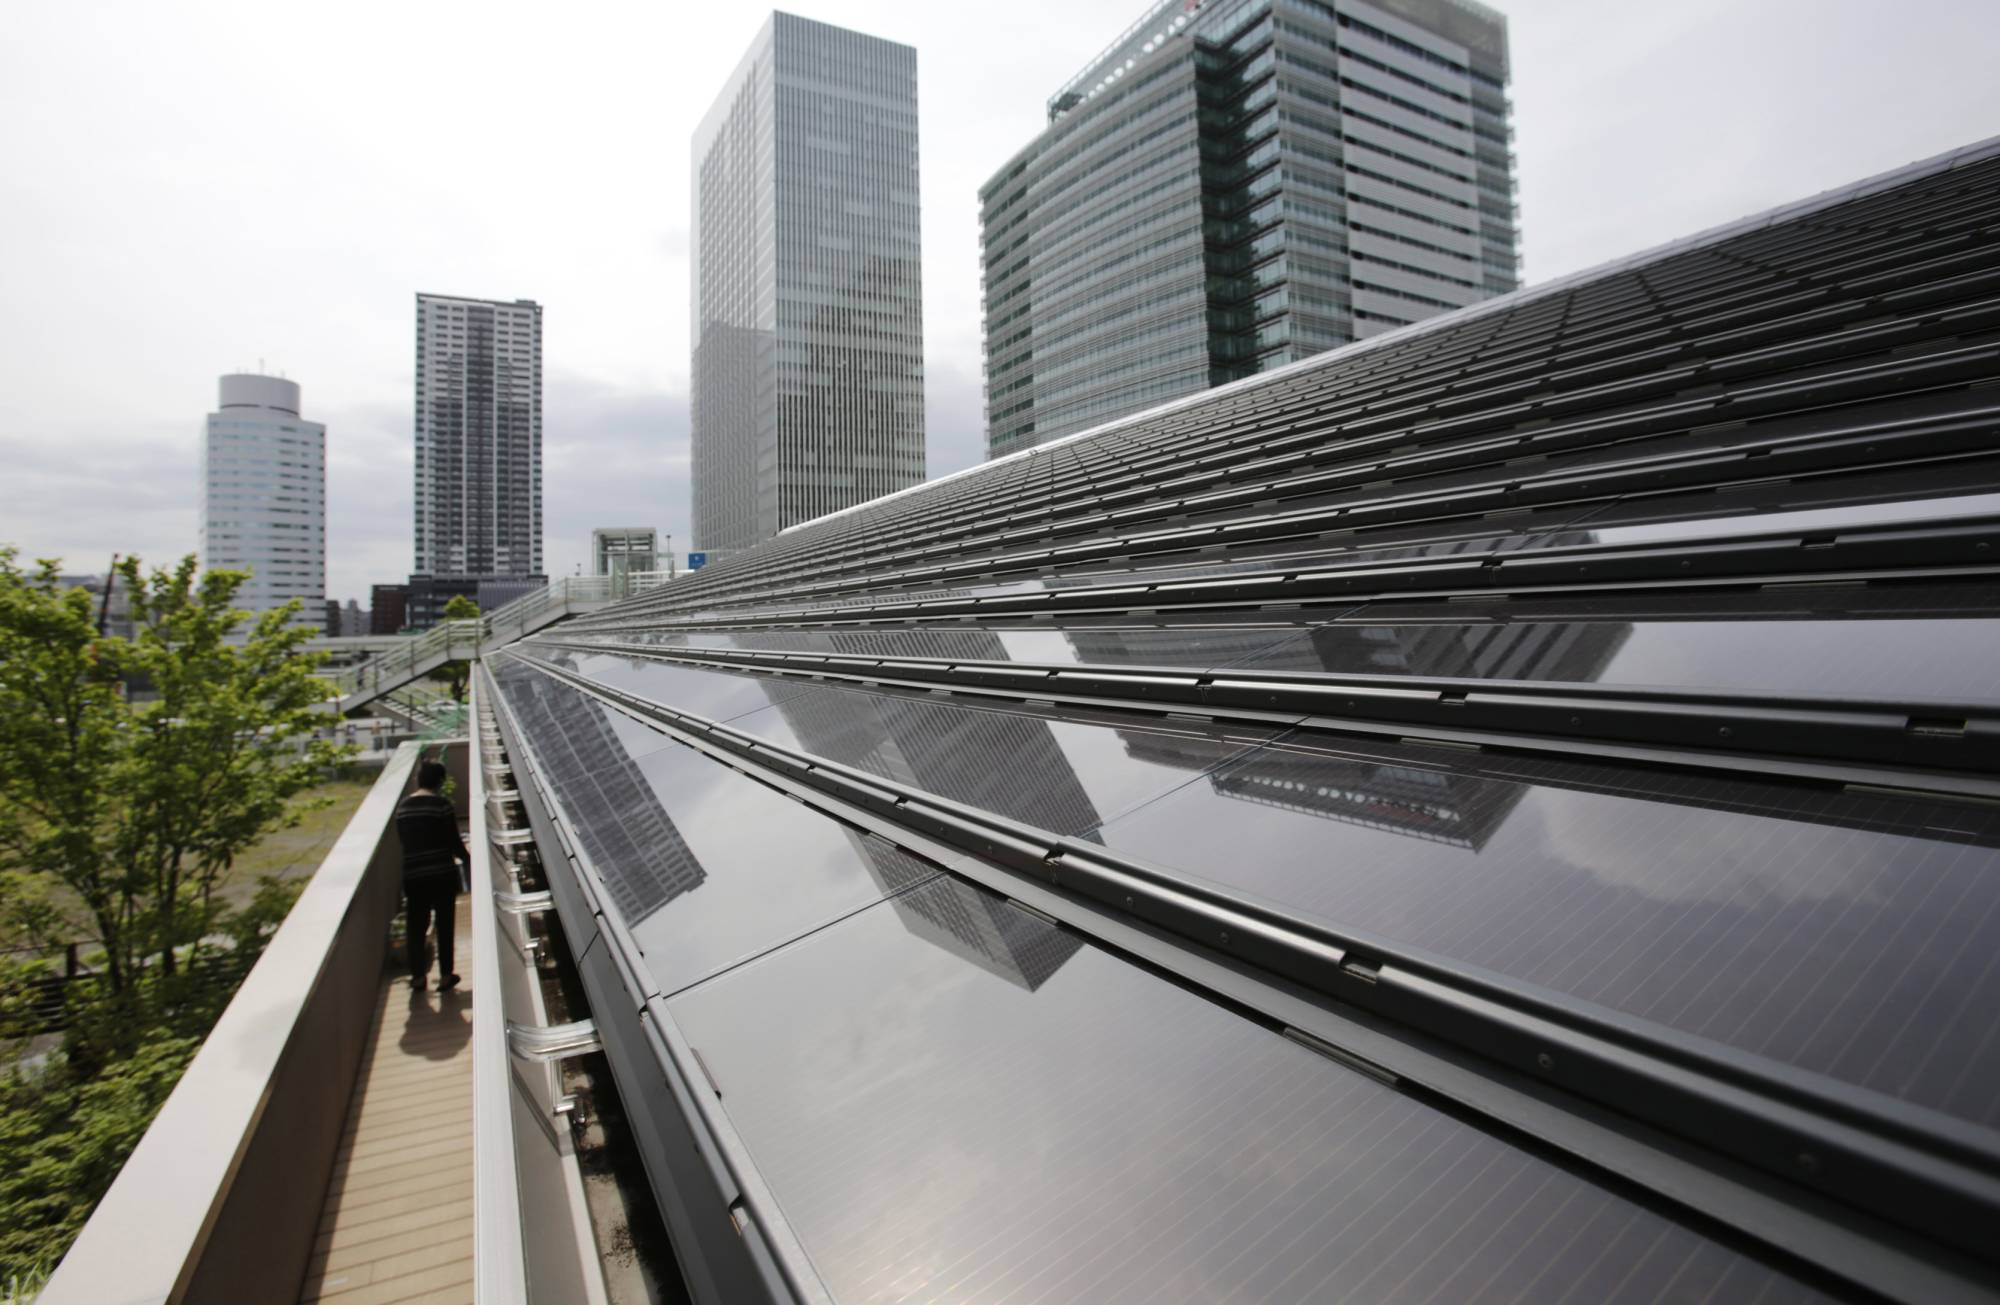 For worldwide energy transition, the installed capacity for solar PVs has grown sevenfold and threefold for onshore wind turbines since 2010. | REUTERS